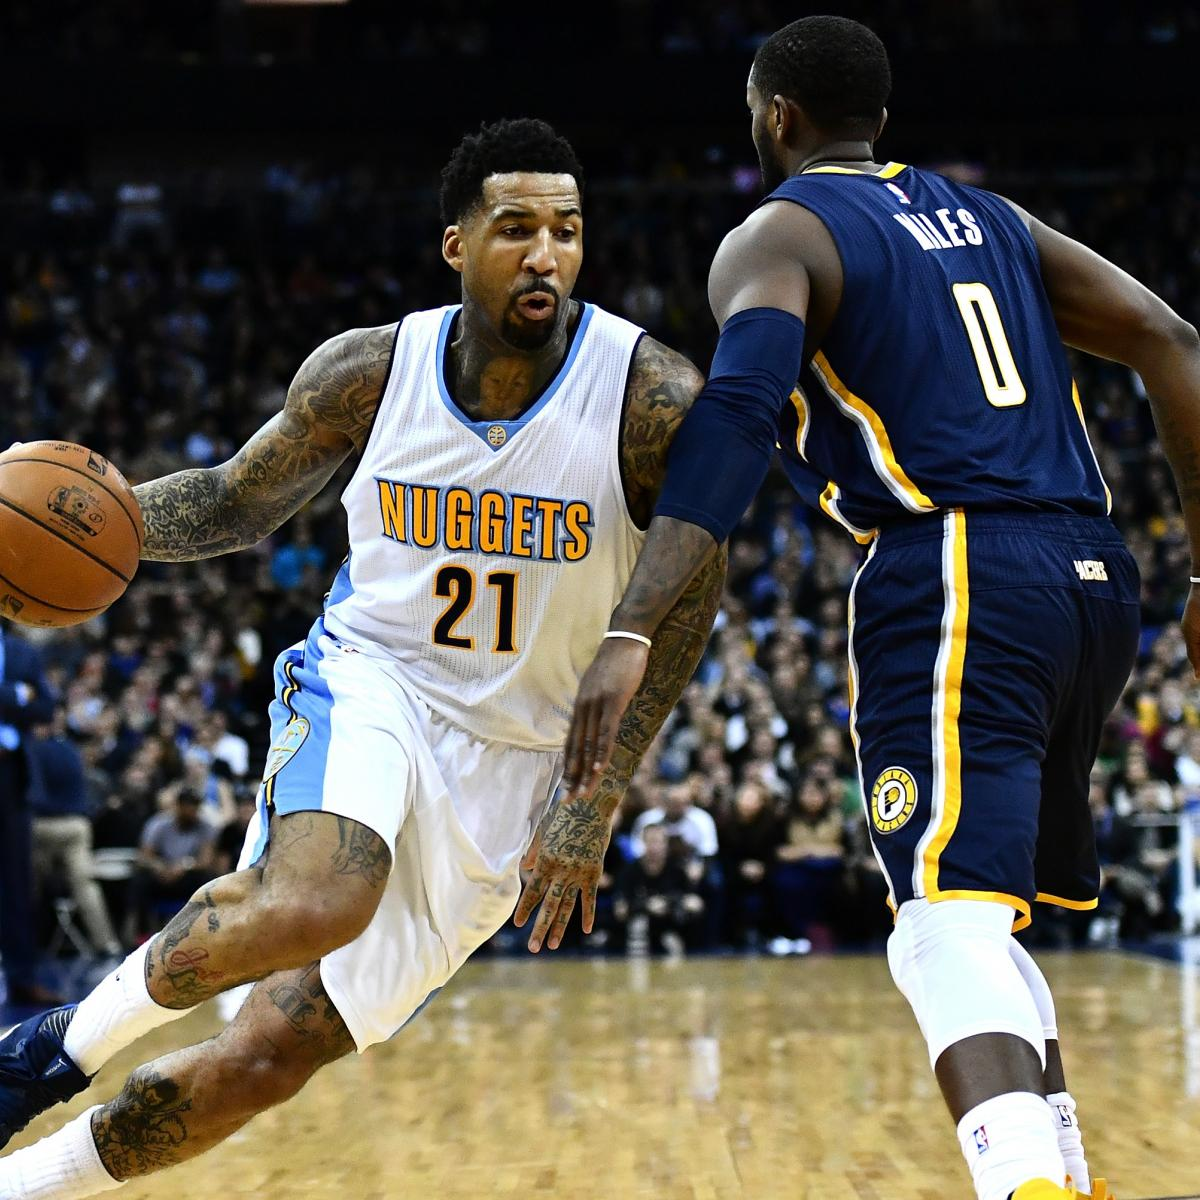 Nuggets Rumors: Wilson Chandler Trade Rumors: Latest News, Speculation